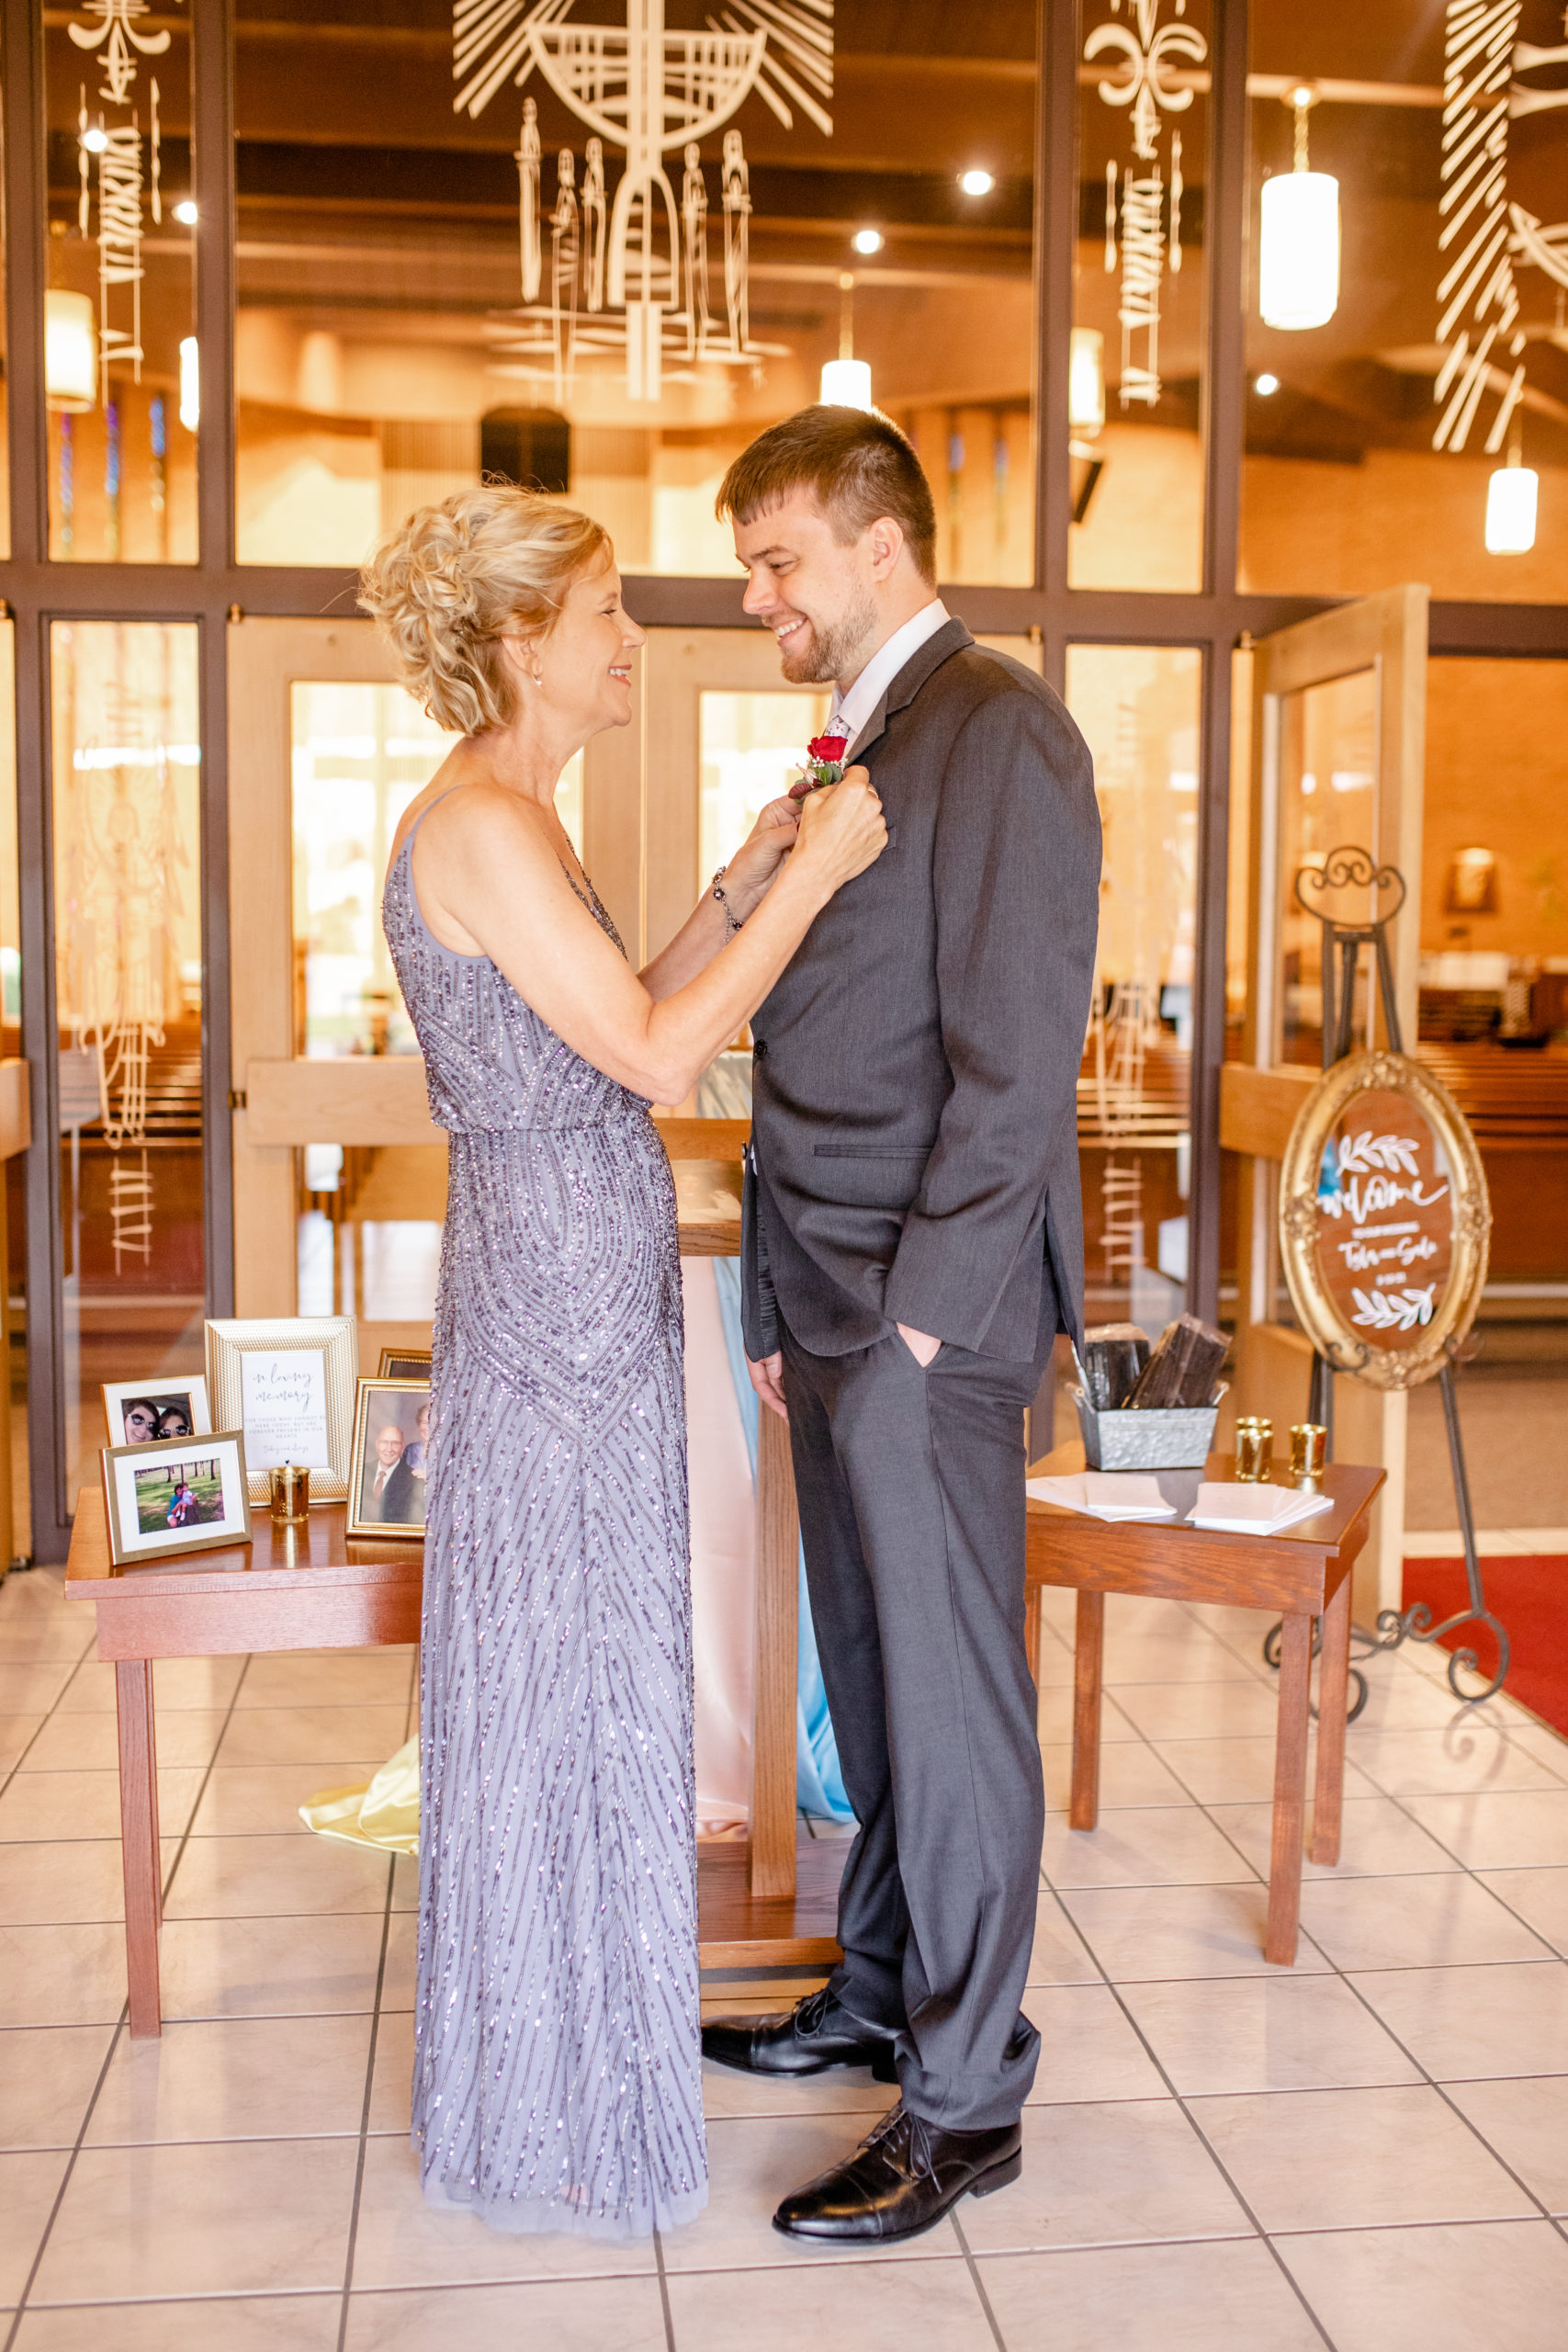 groom, mother of the groom, groom, pinning the boutonniere